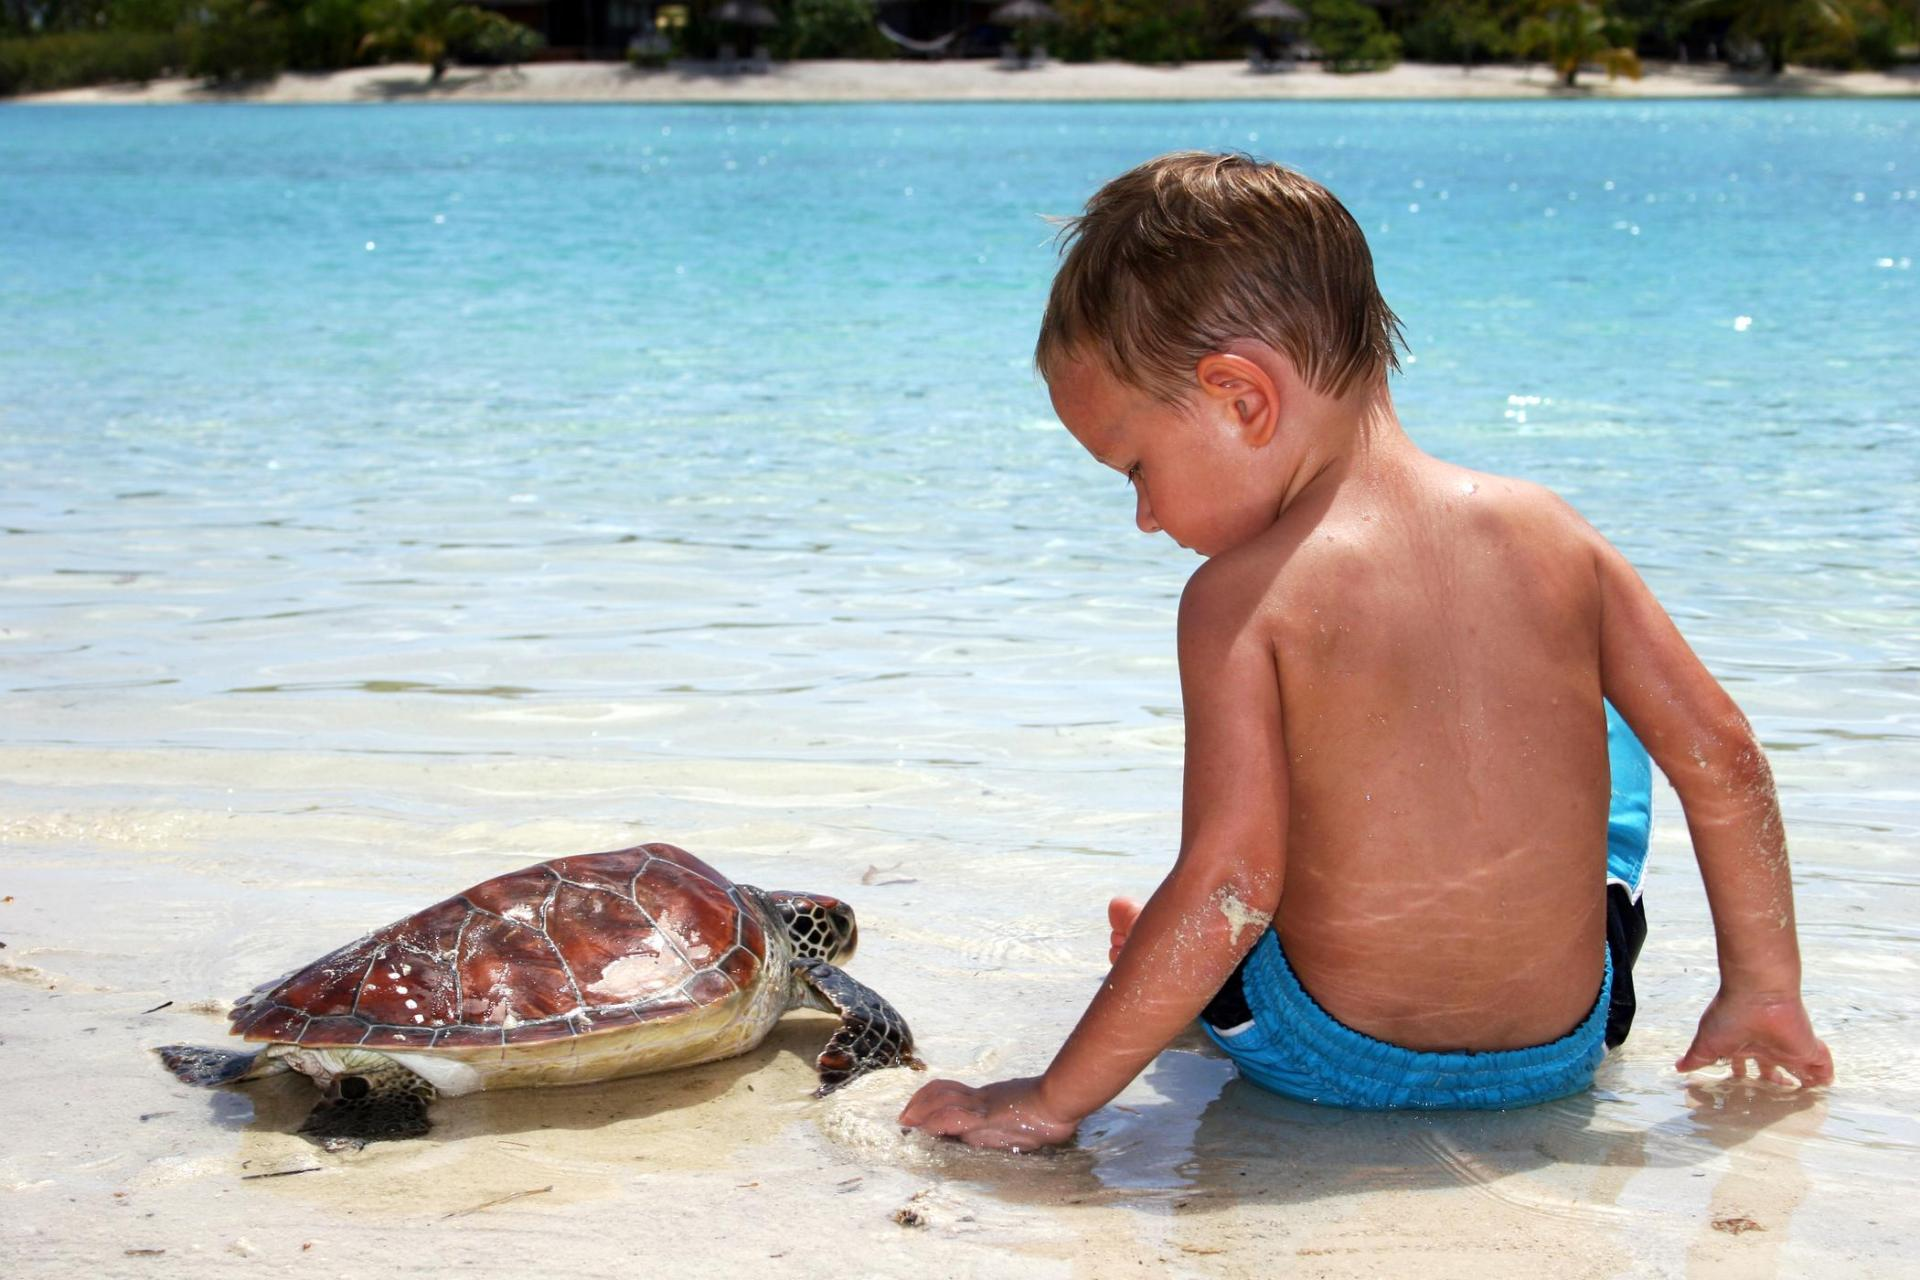 Toddler with Turtle, Le Méridien Bora Bora